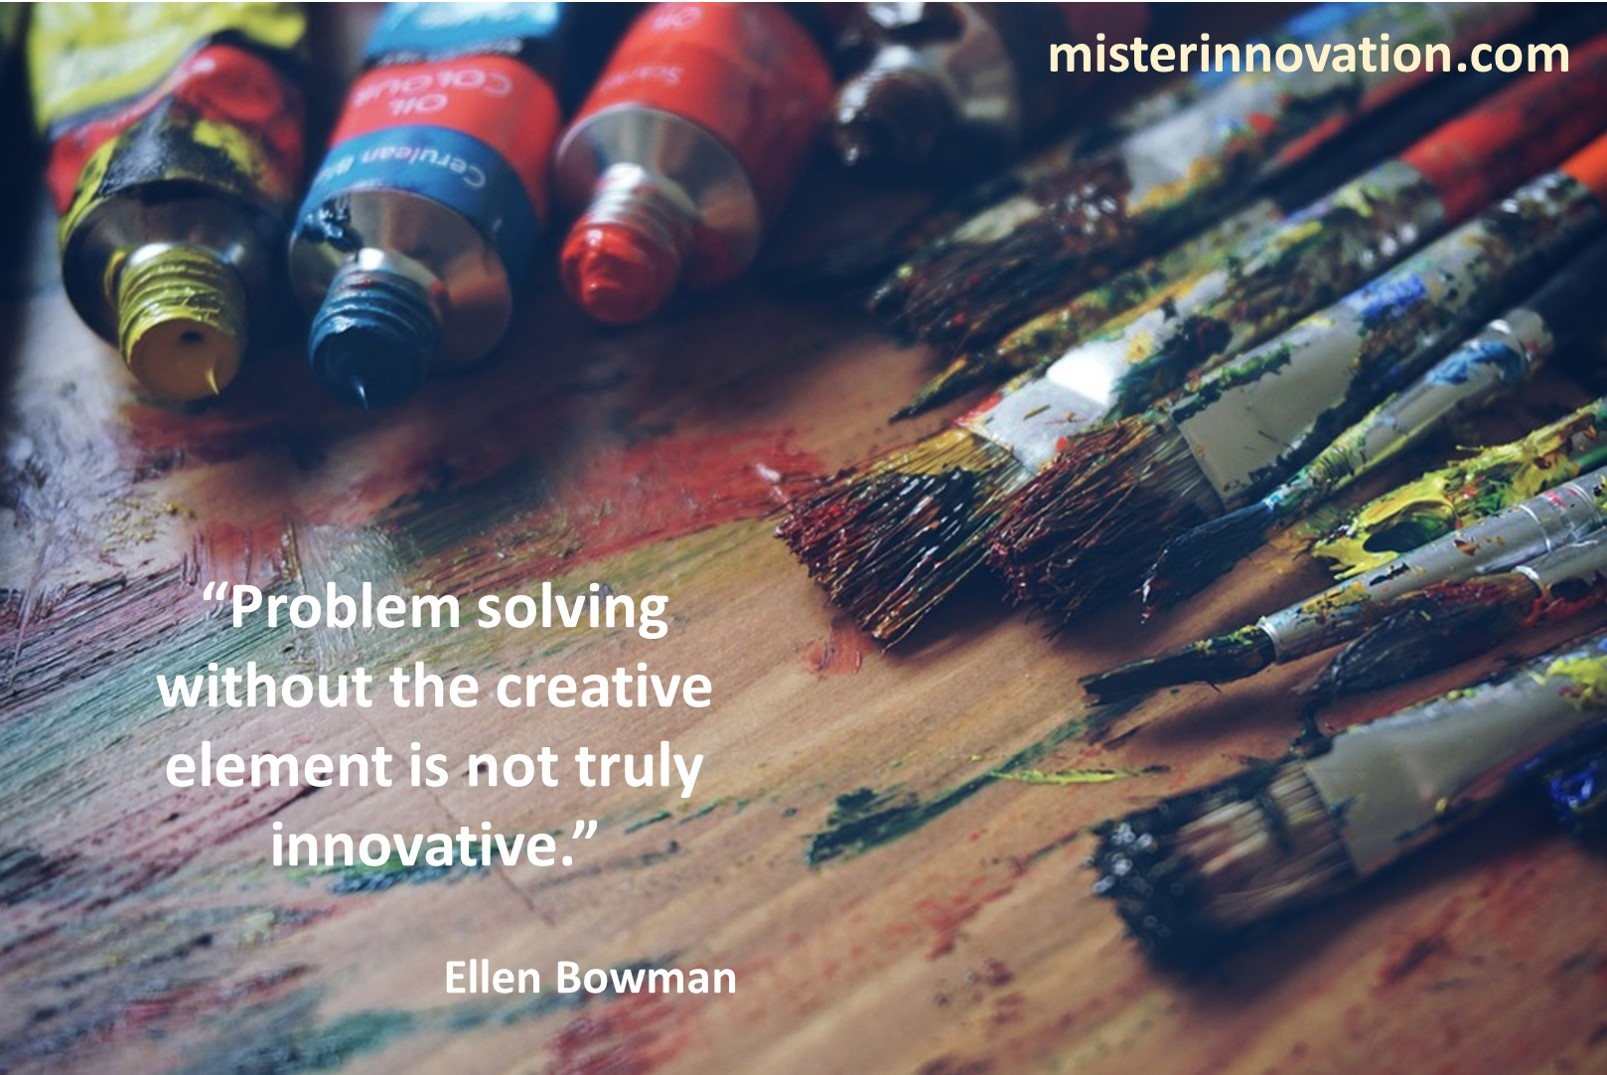 Ellen Bowman Quote on Creative Problem Solving